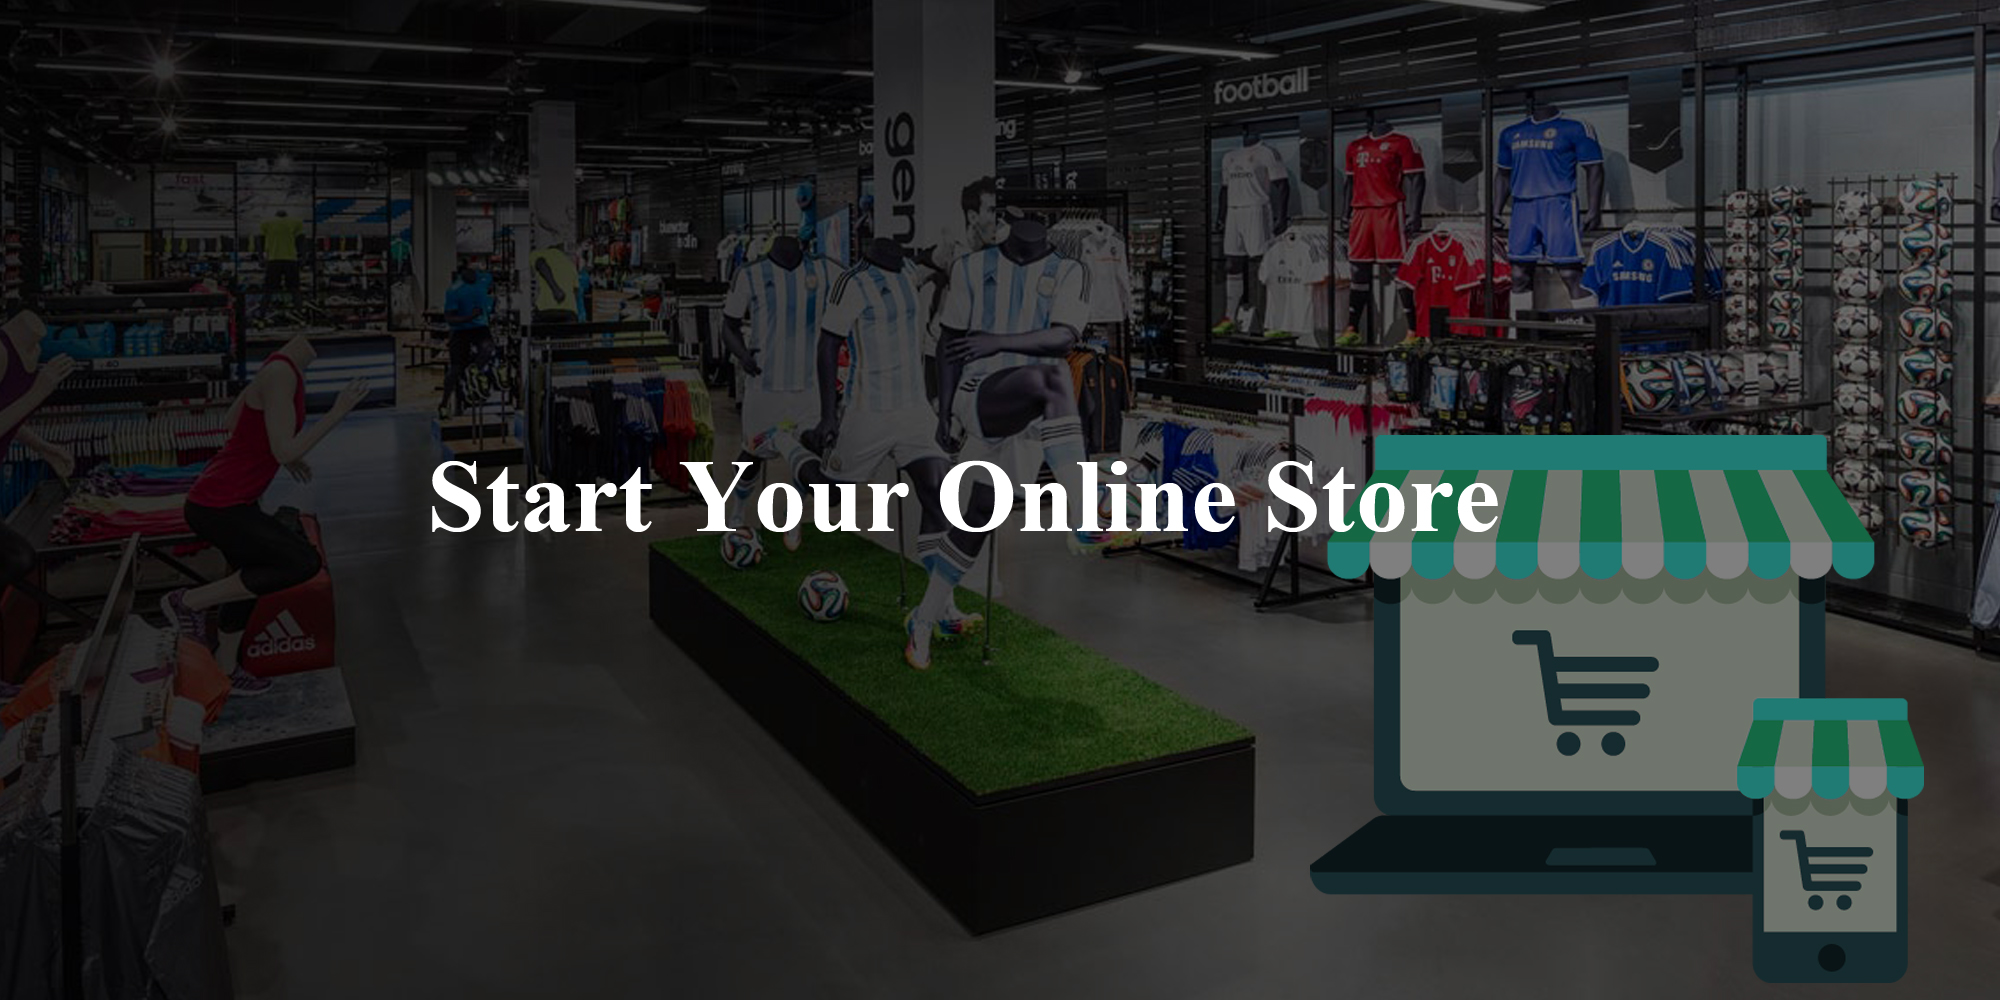 Create your online store to showcase your products online with their professionalism